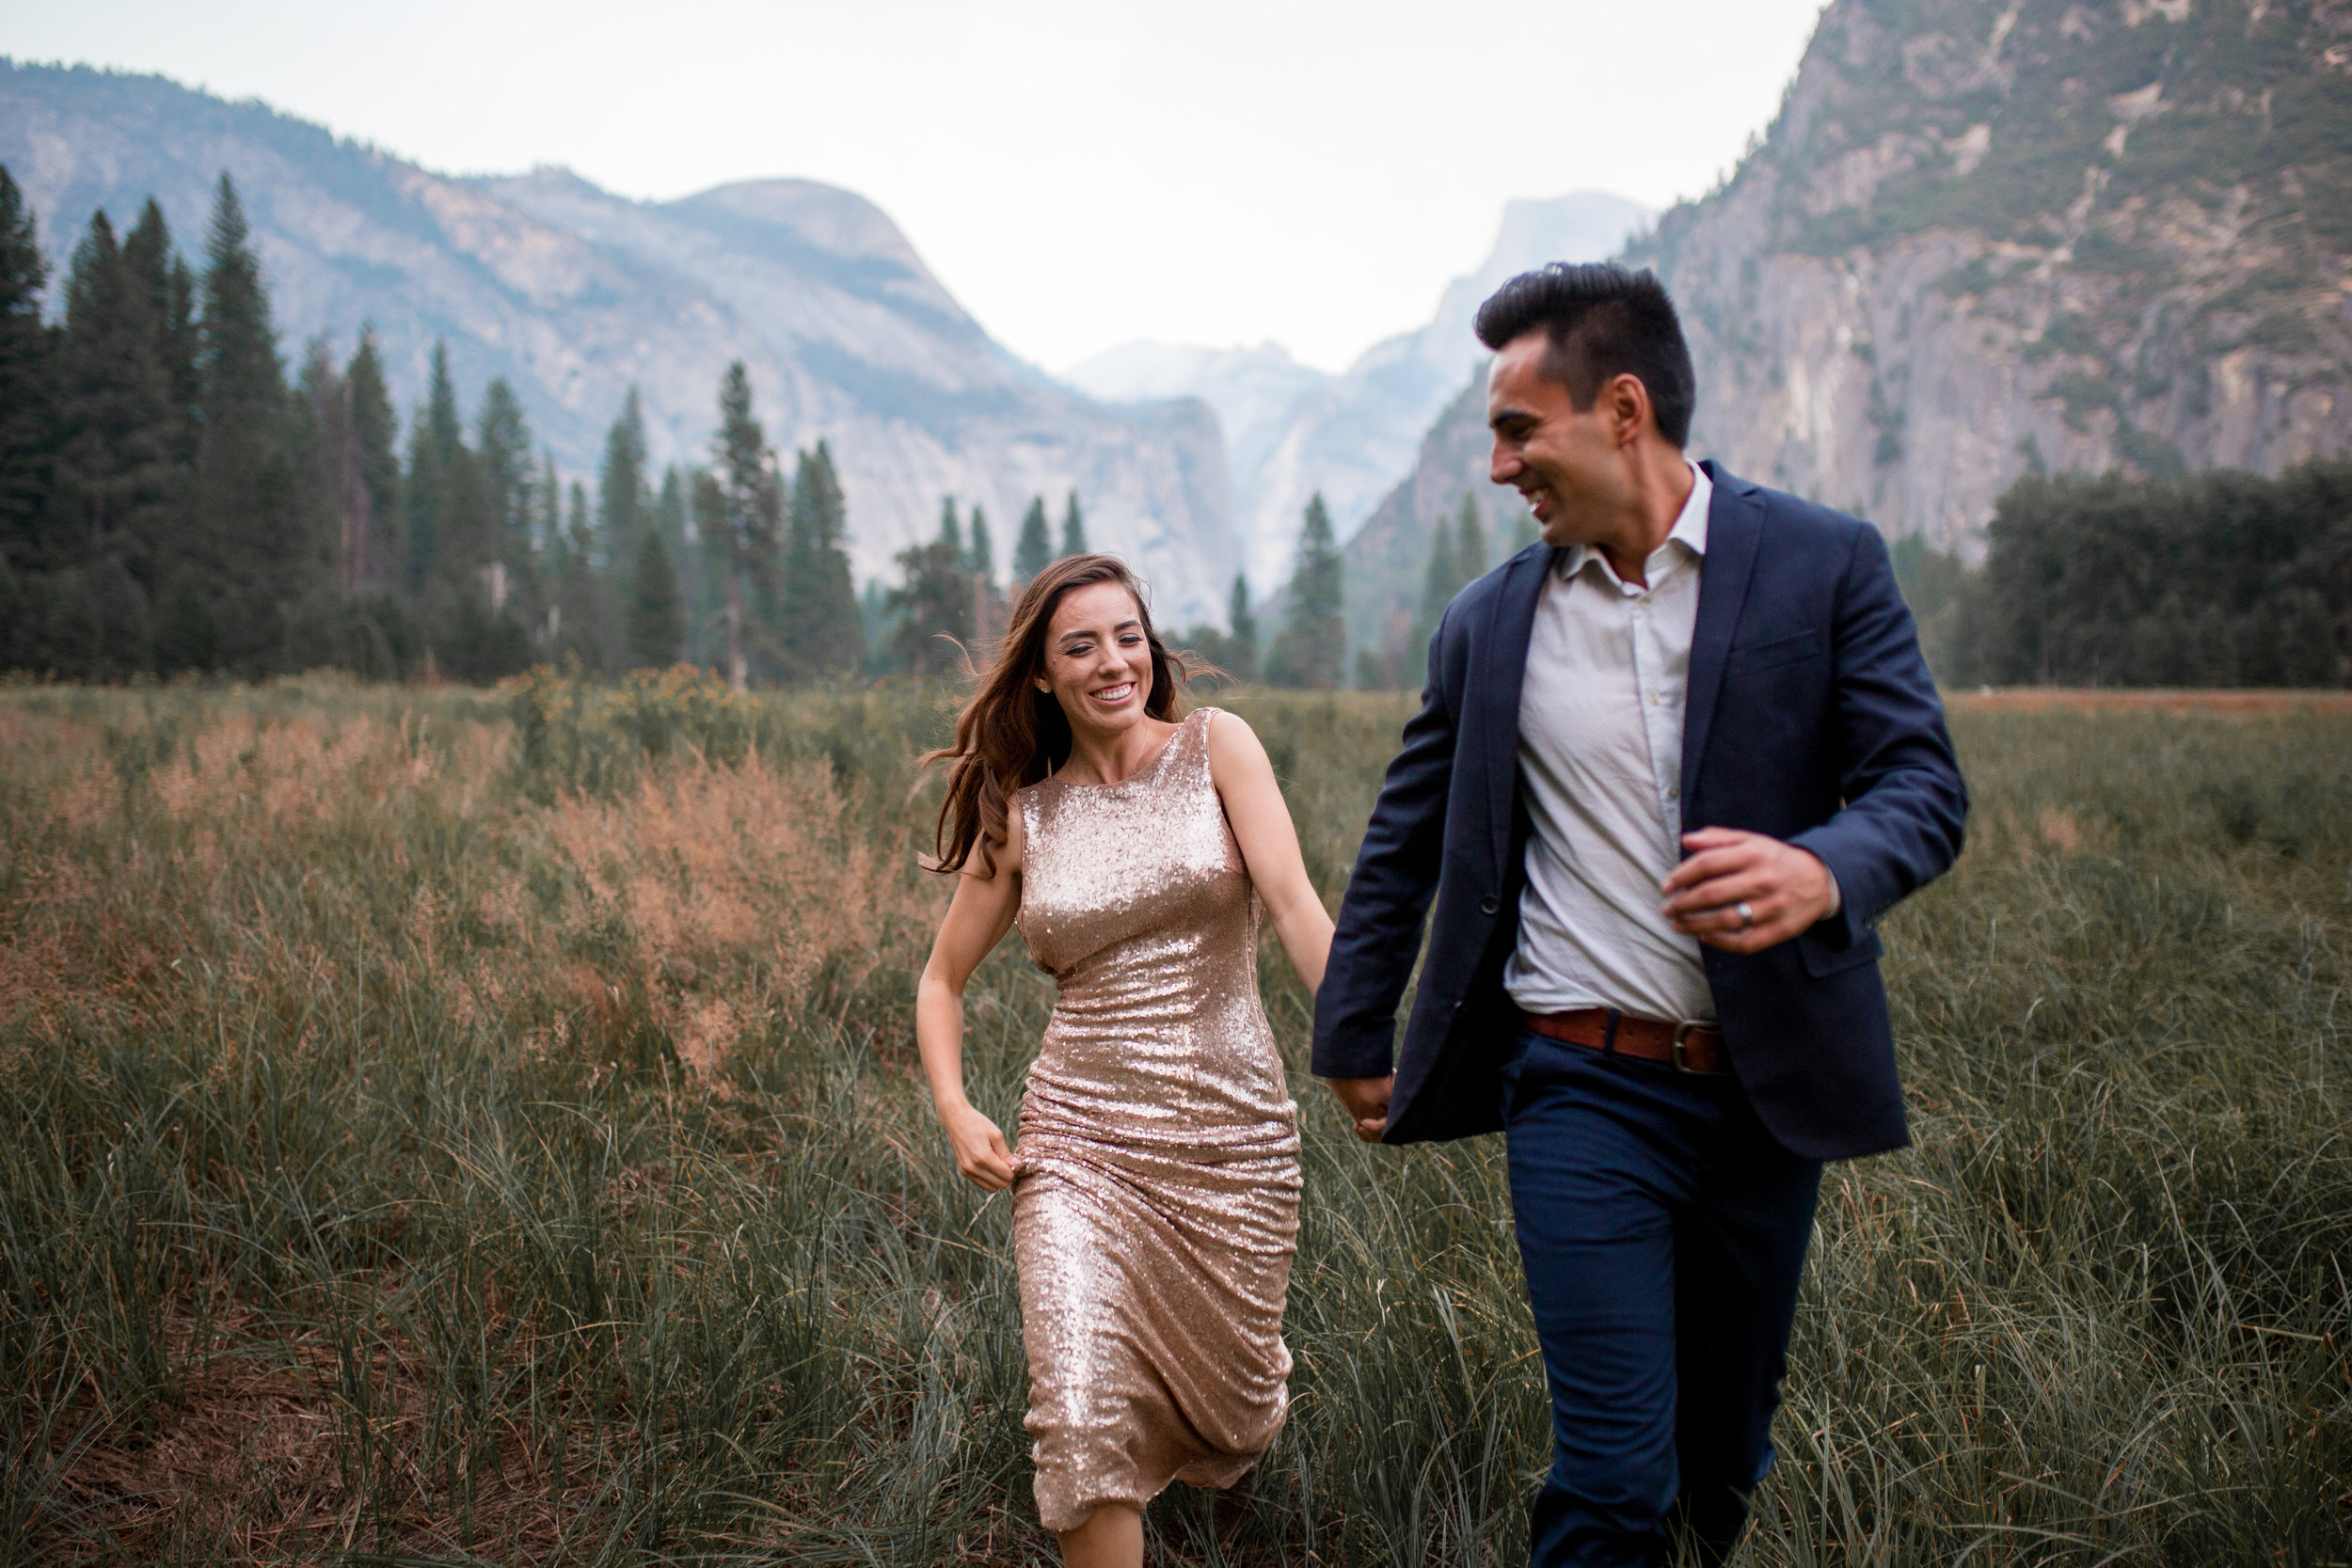 nicole-daacke-photography-yosemite-national-park-adventurous-engagement-session-half-dome-engagement-session-anniversary-photographer-yosemite-elopement-photographer-yosemite-intimate-wedding-photography-53.jpg